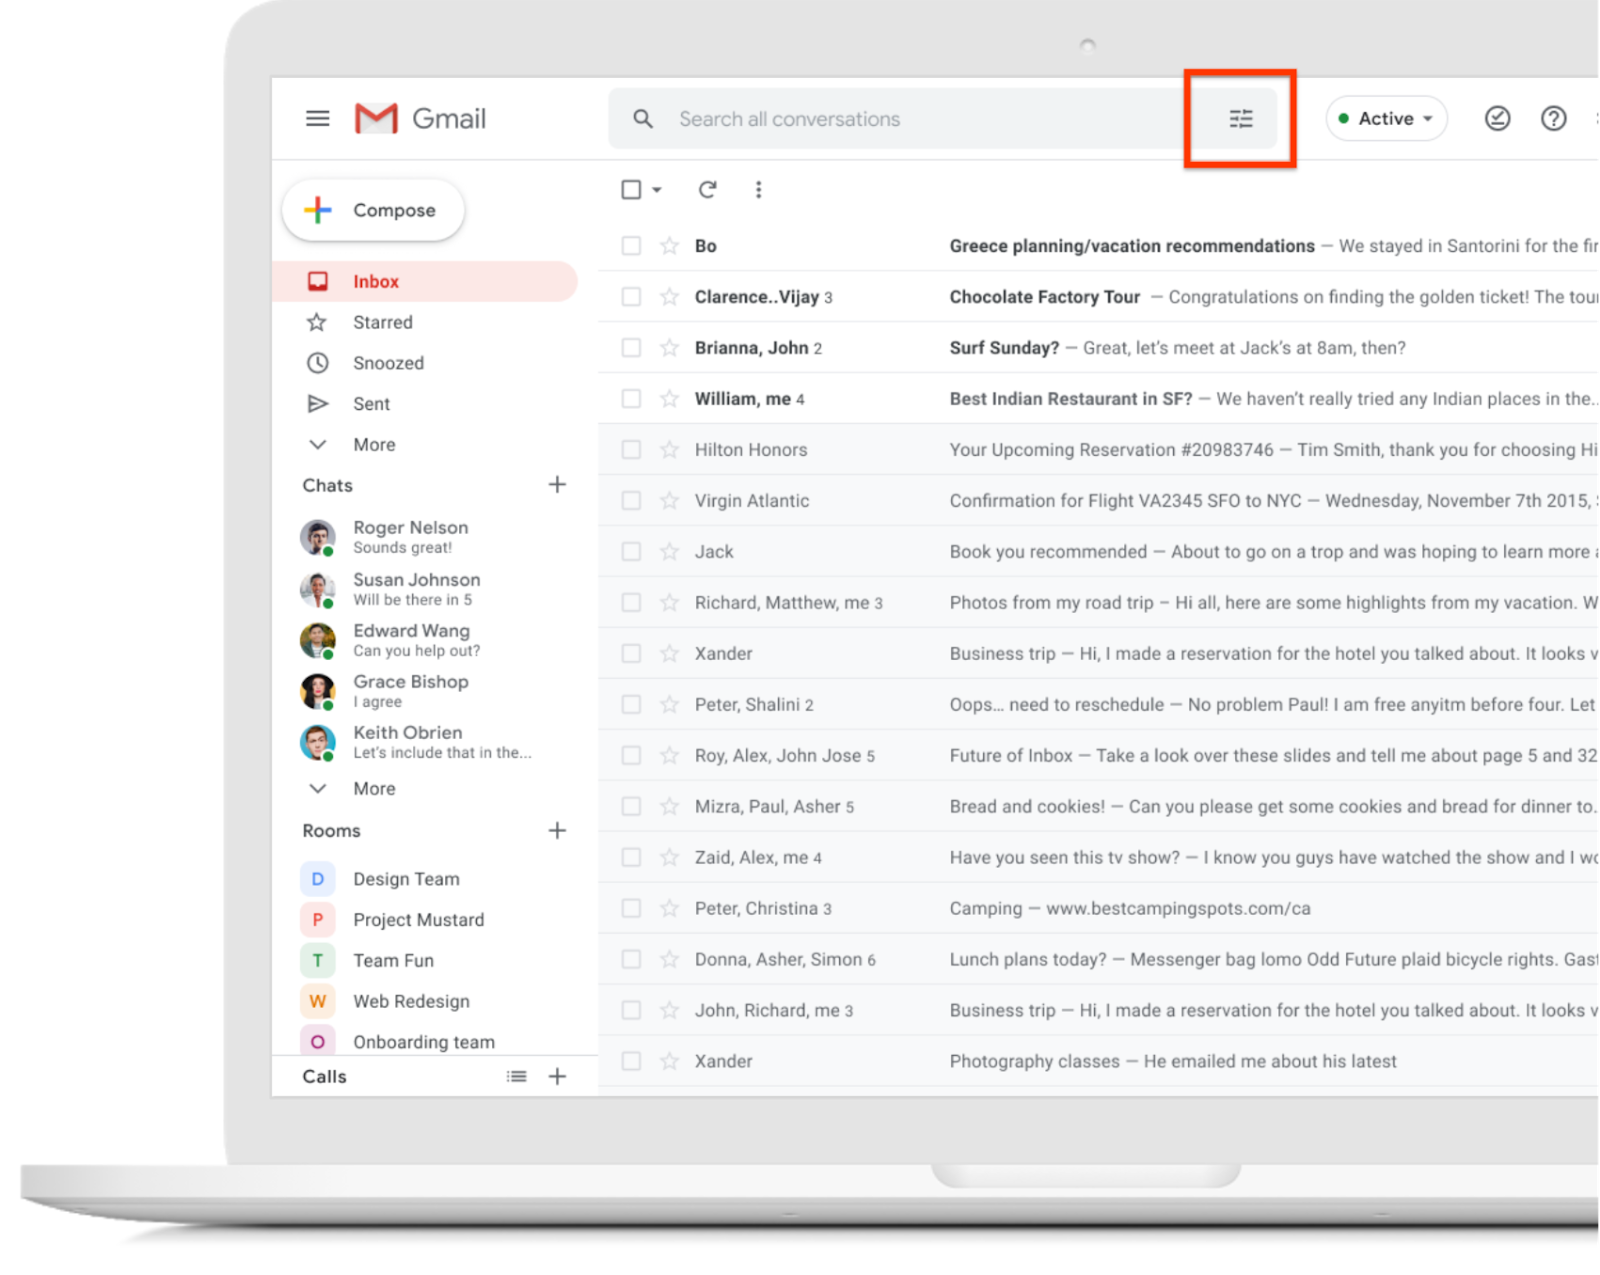 Gmail inbox webpage, red box around the new advanced search icon in the search bar at the top of the image.